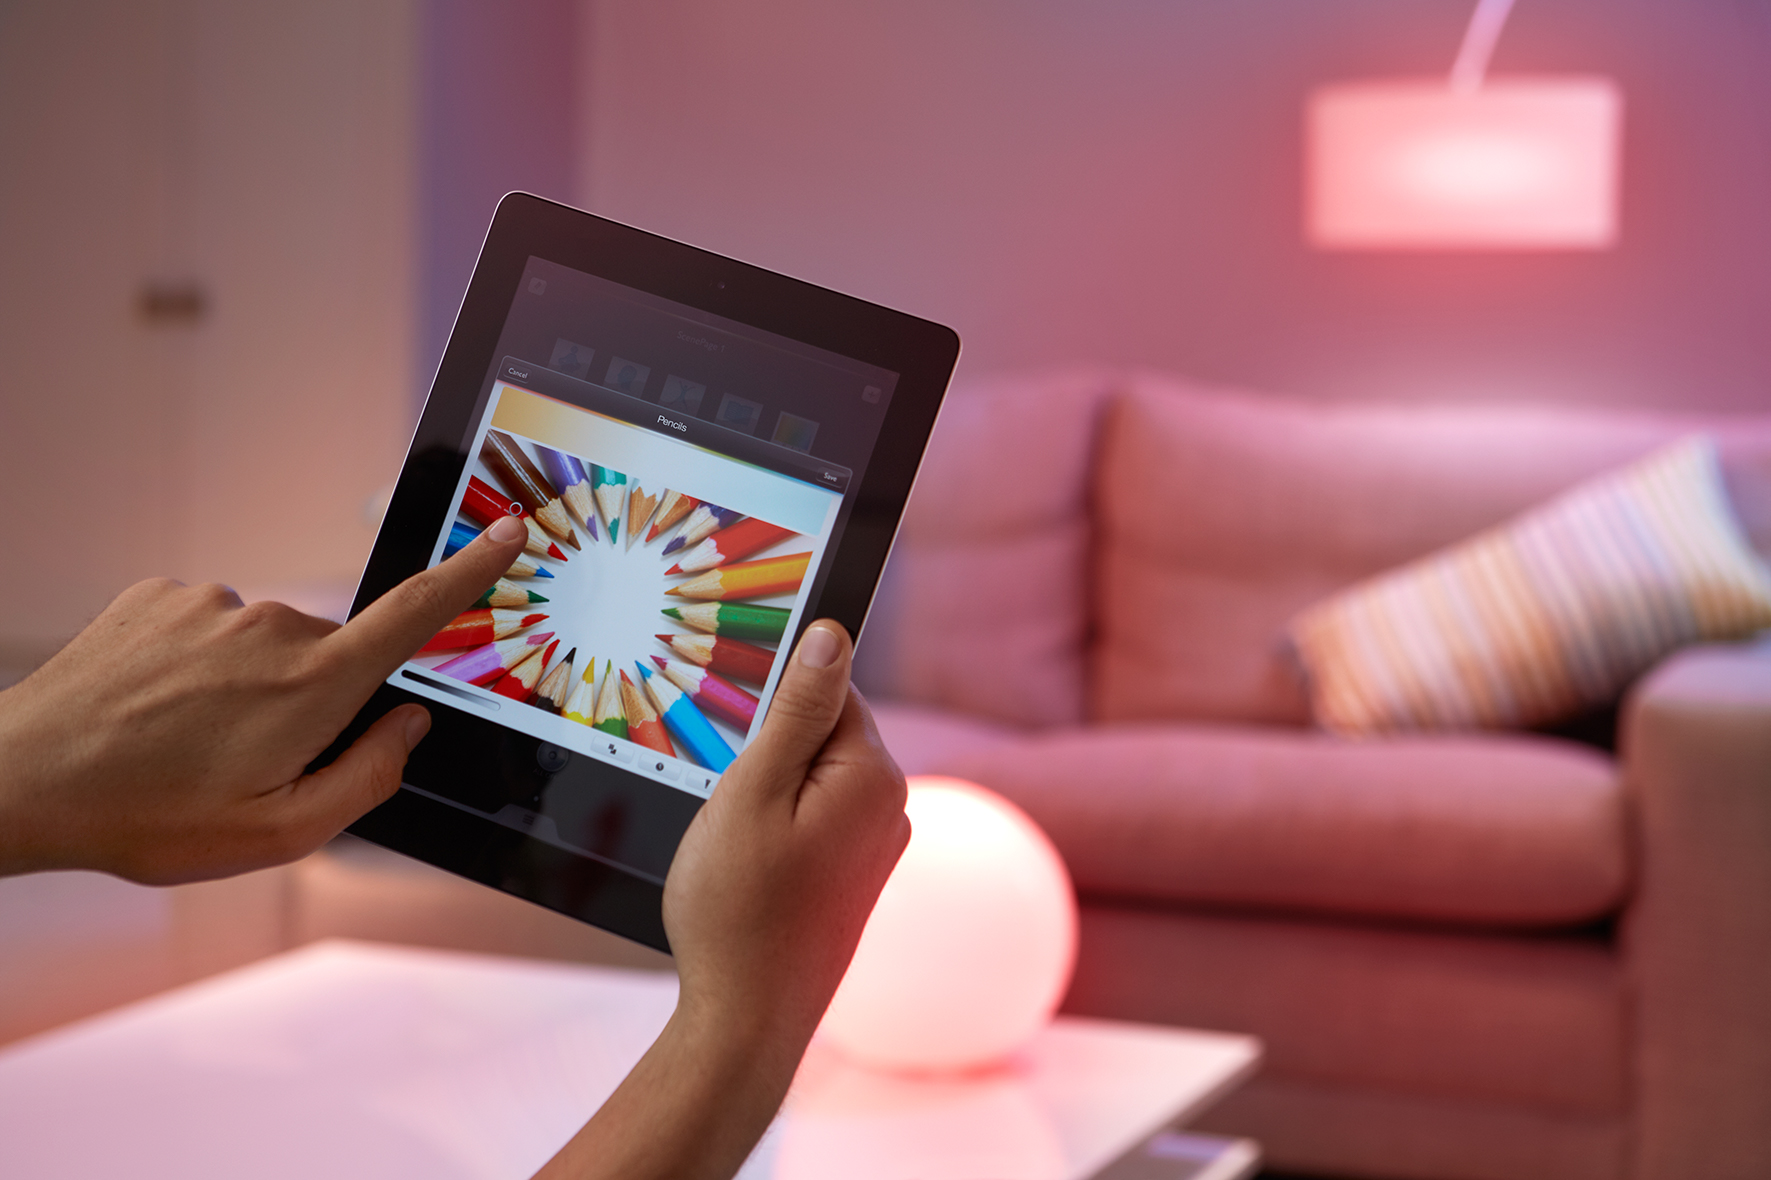 personal wireless lighting hue by philips and its new competitors